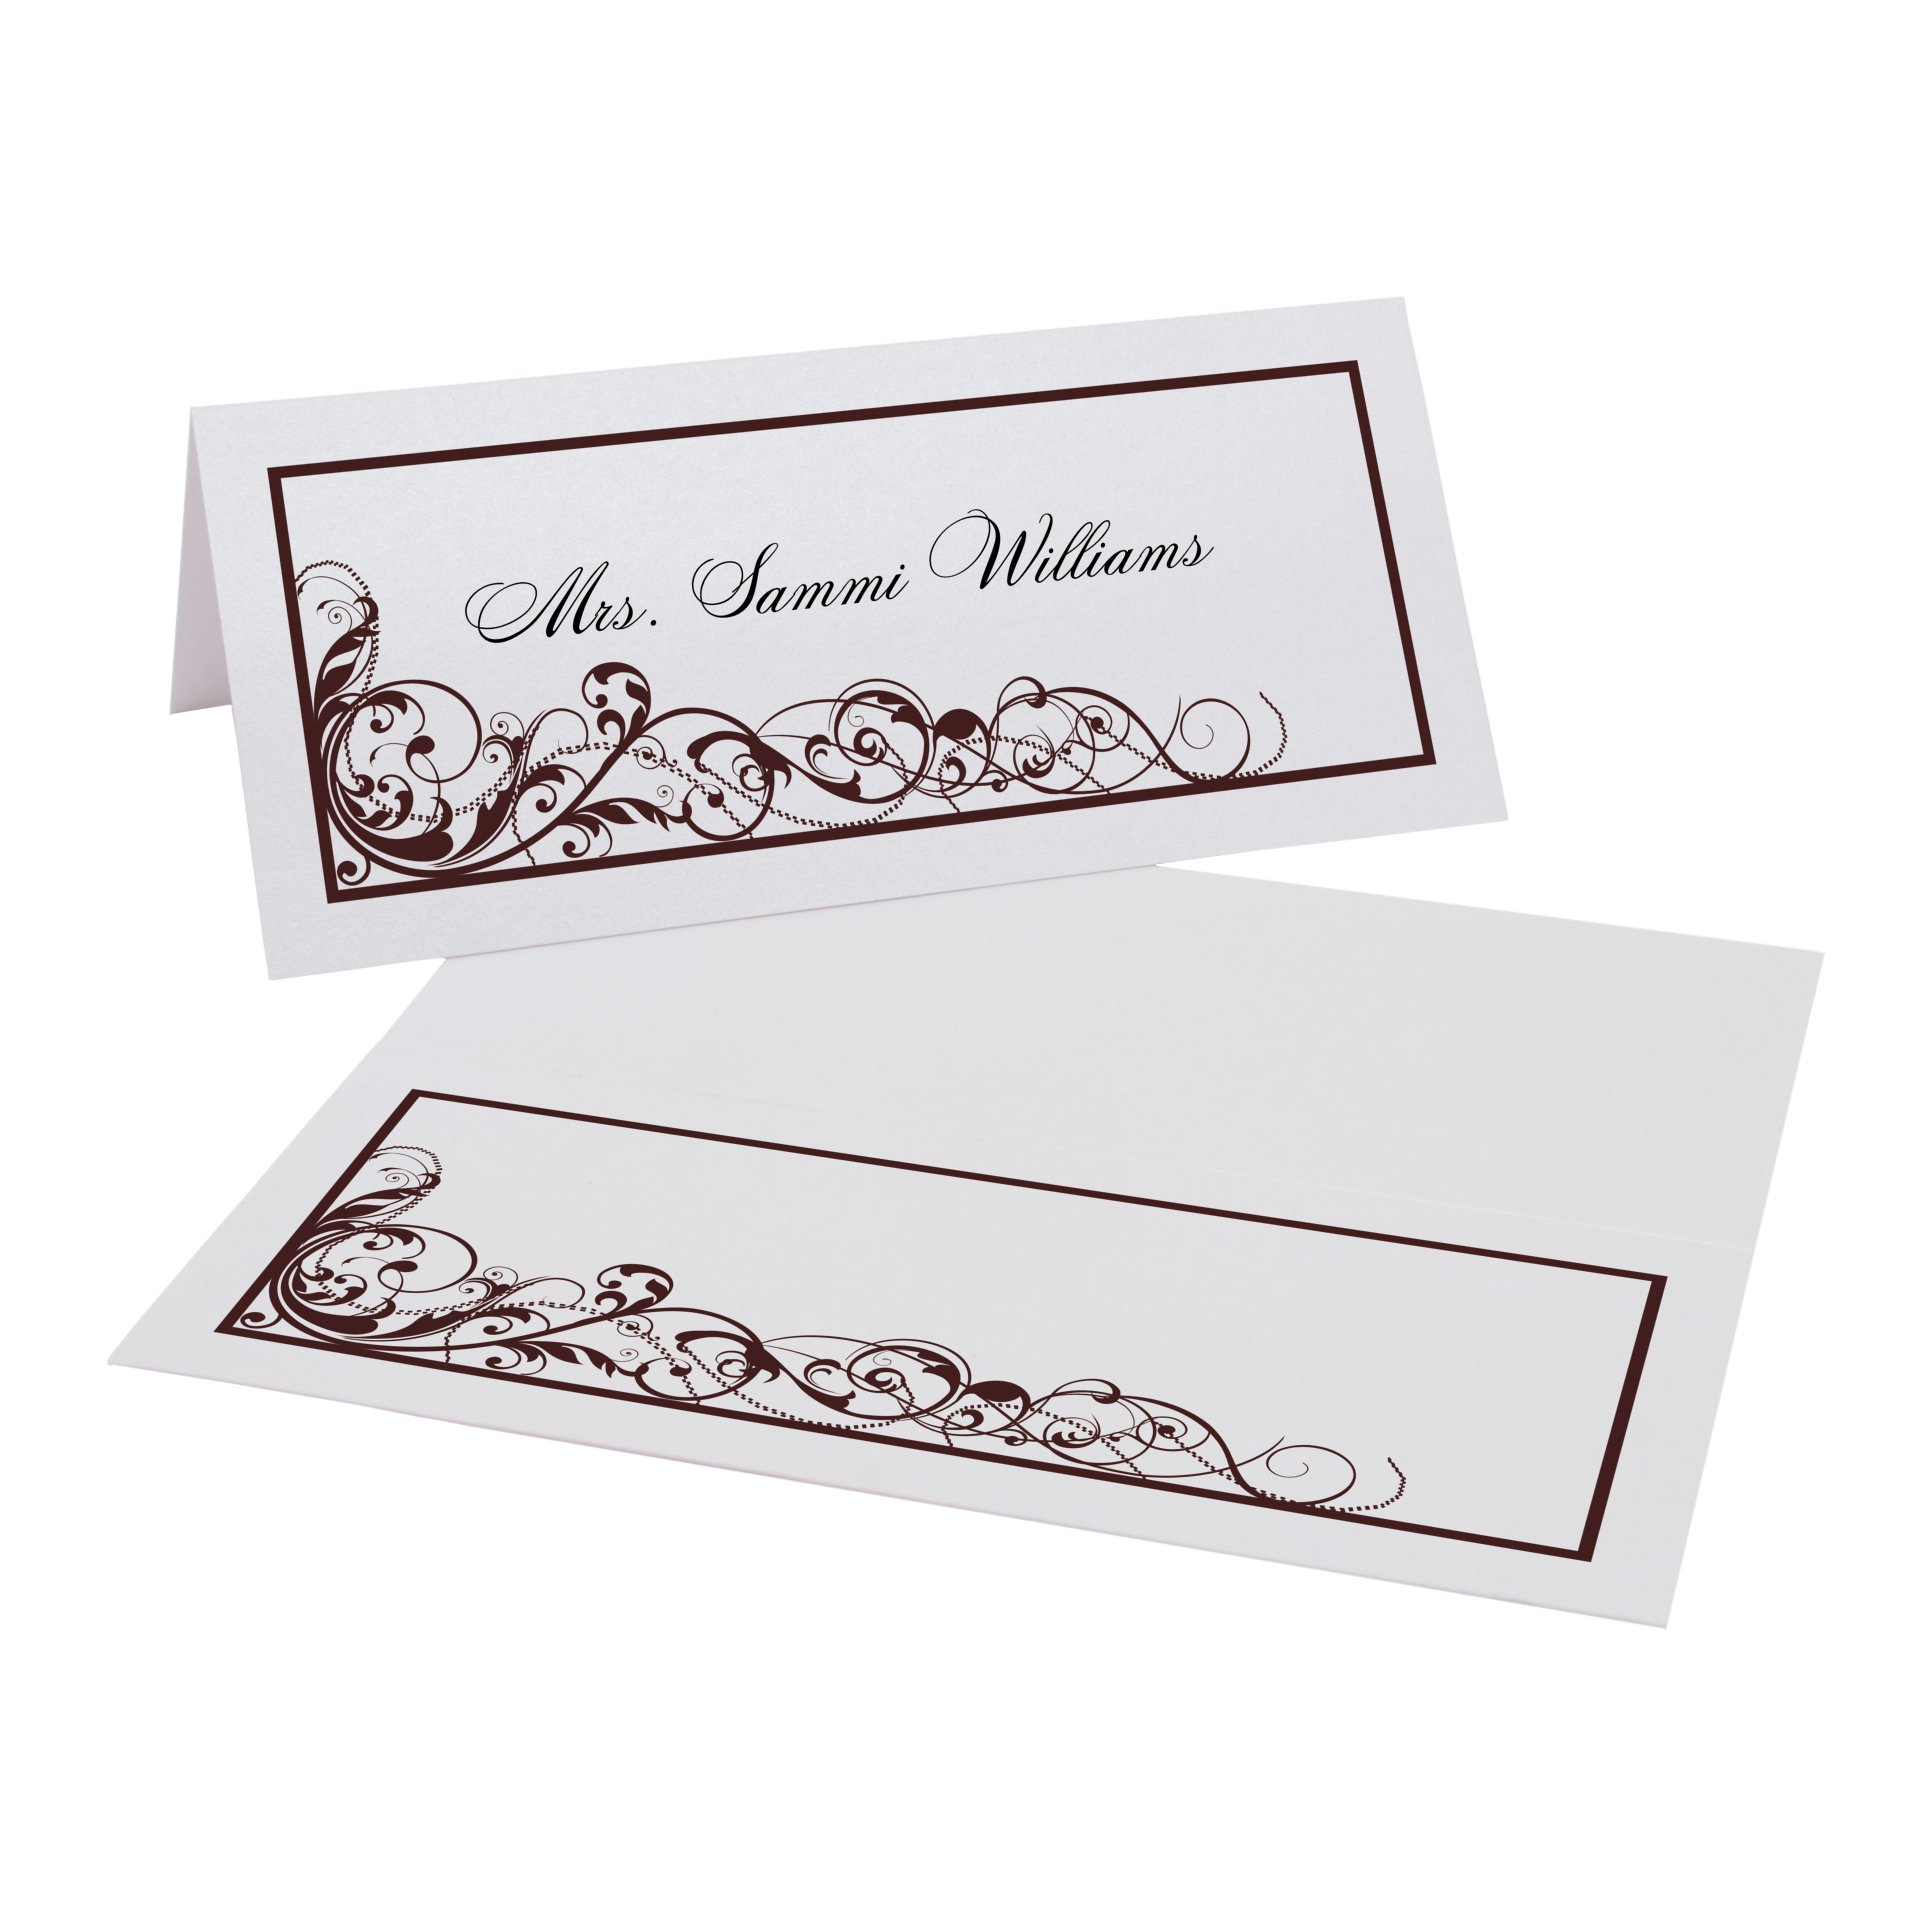 Scribble Vintage Swirl Place Cards, Pearl White, Chocolate, Set of 375 by Documents and Designs